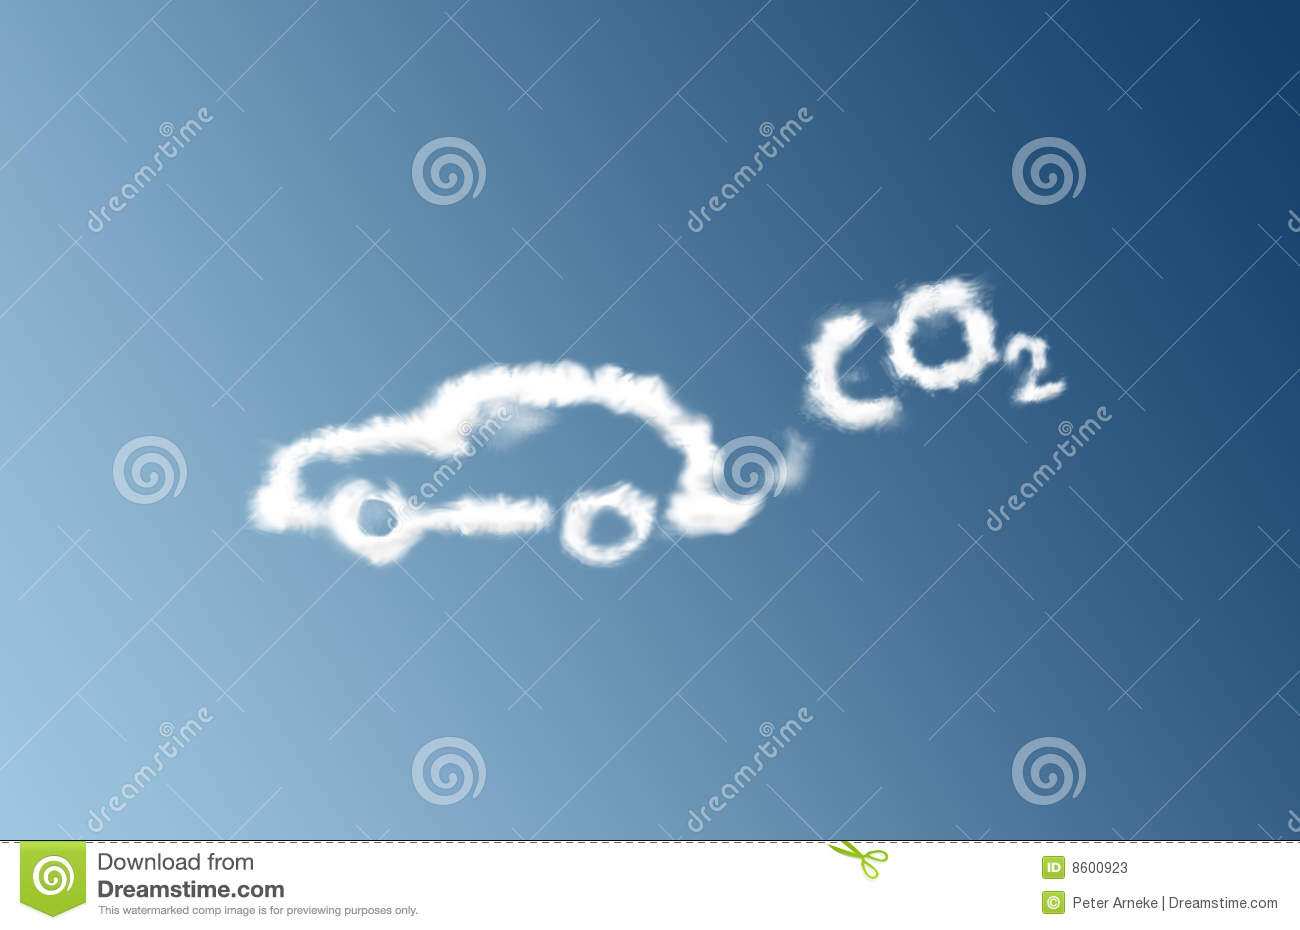 co2 car emission cloud stock photos image 8600923 free writing clipart for teachers writing clipart free